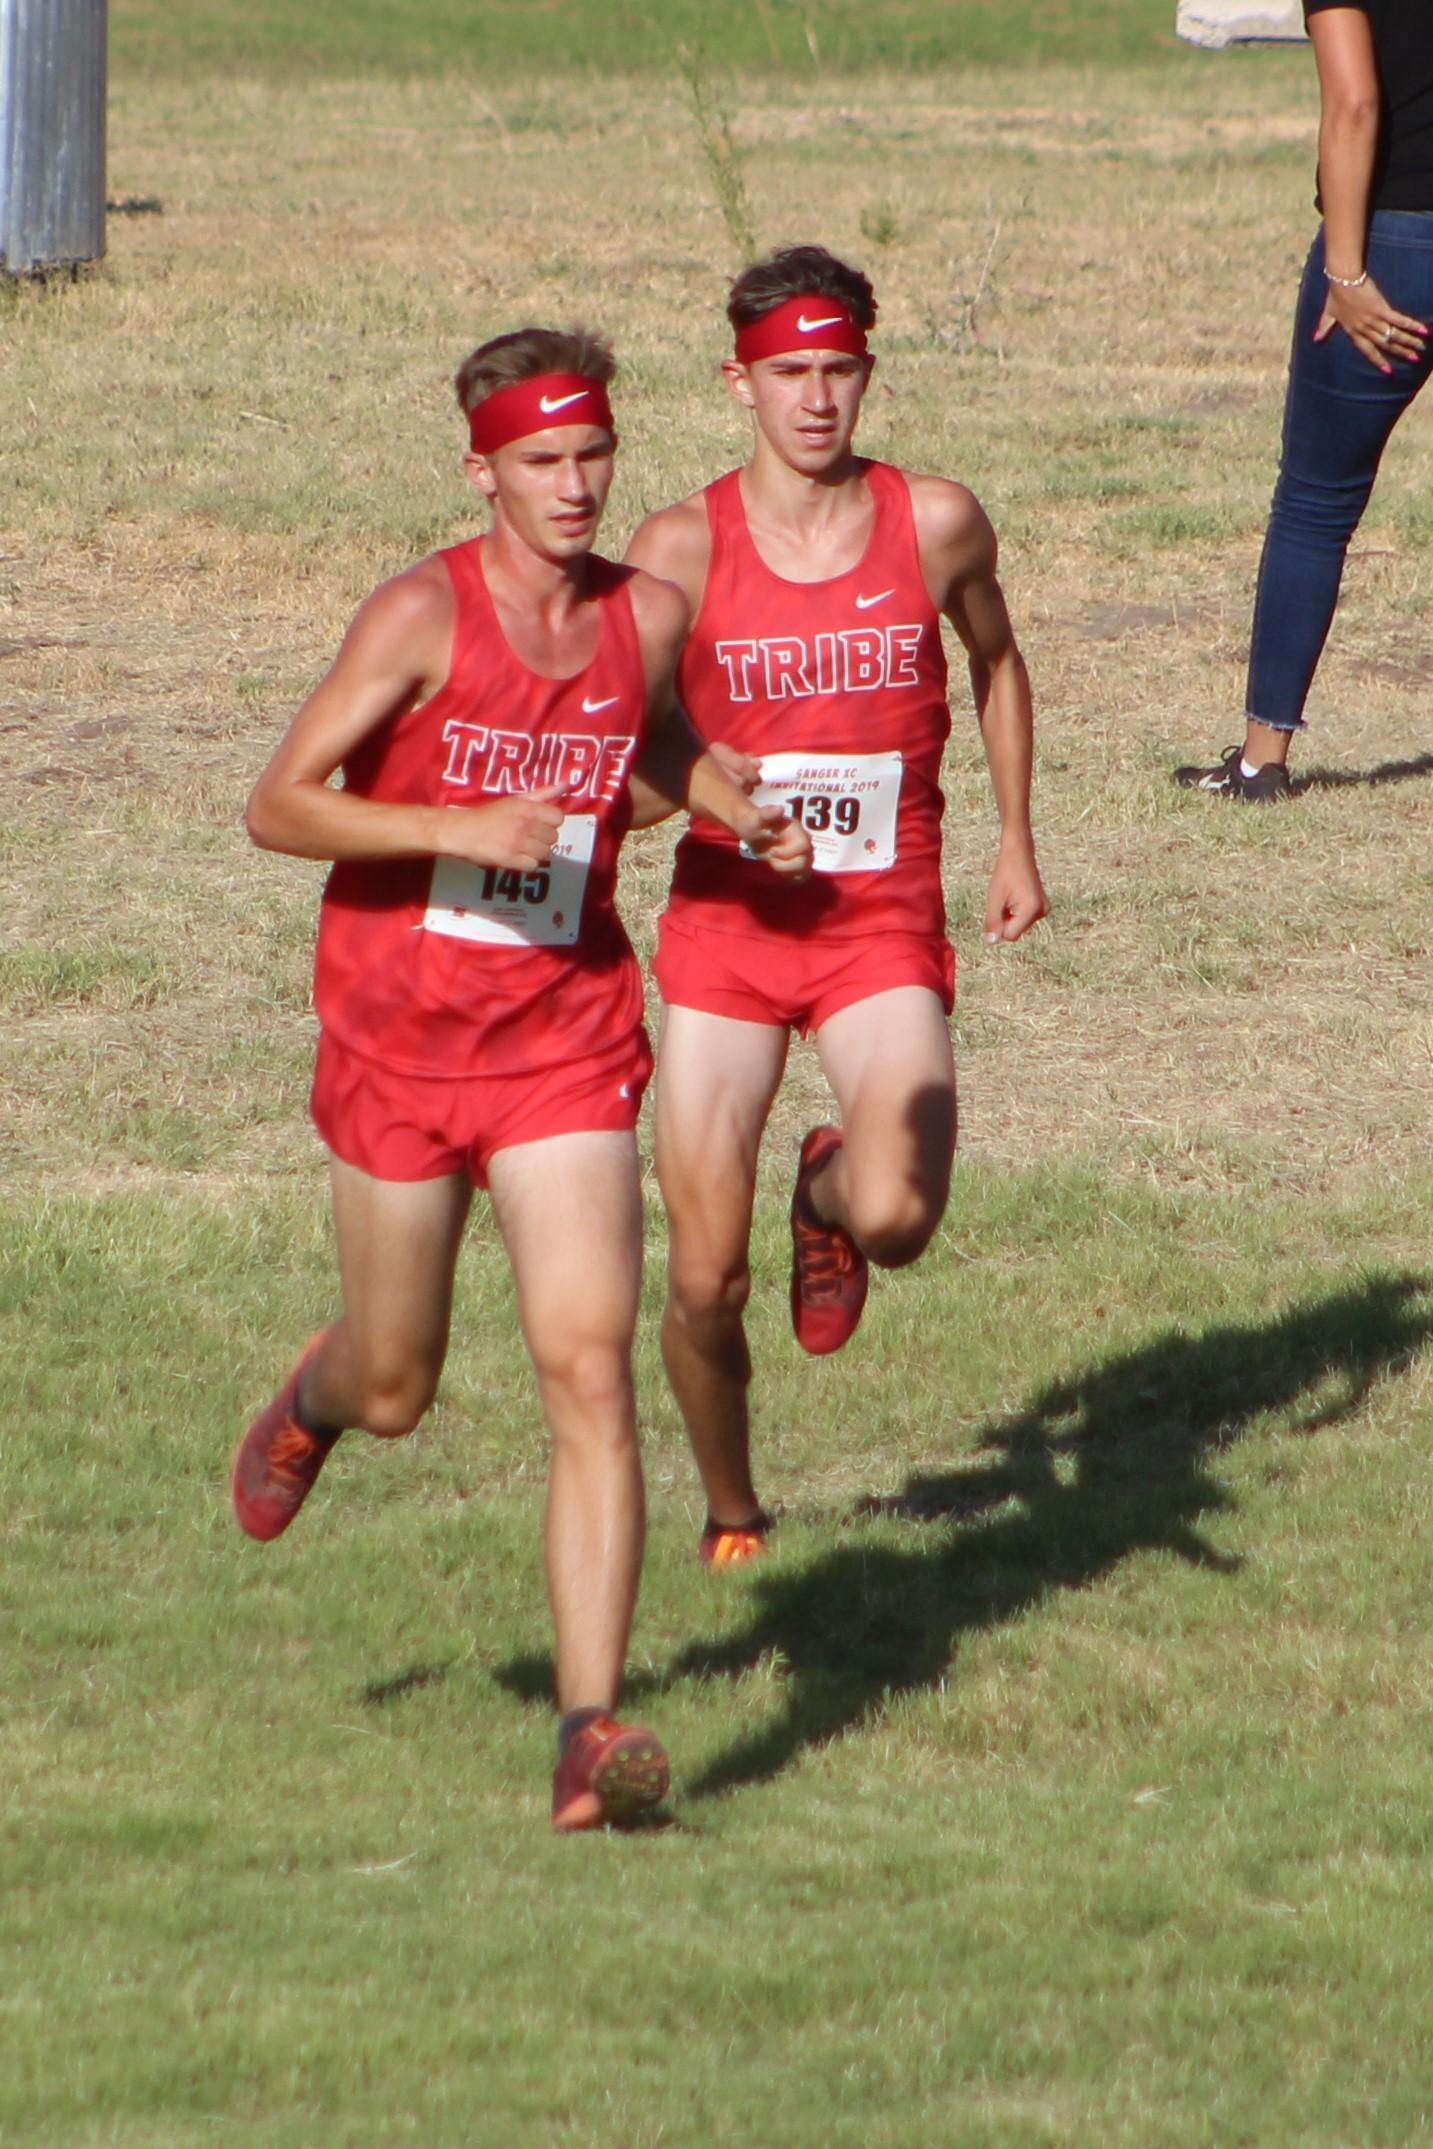 Cross country runners in action at Sanger